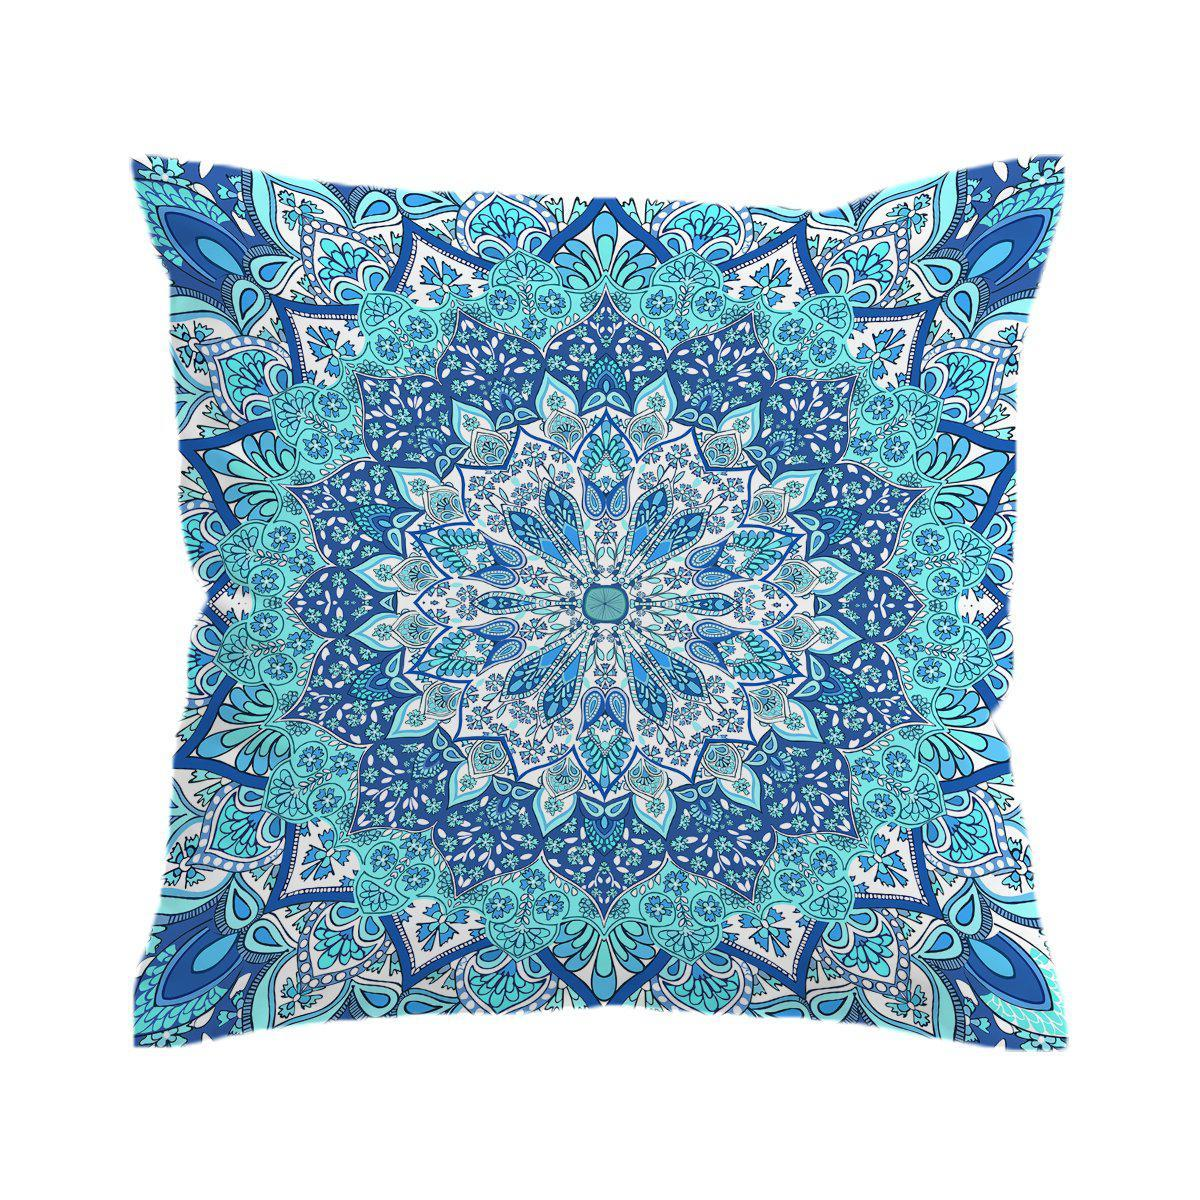 Pandawa Beach Pillow Cover-Coastal Passion